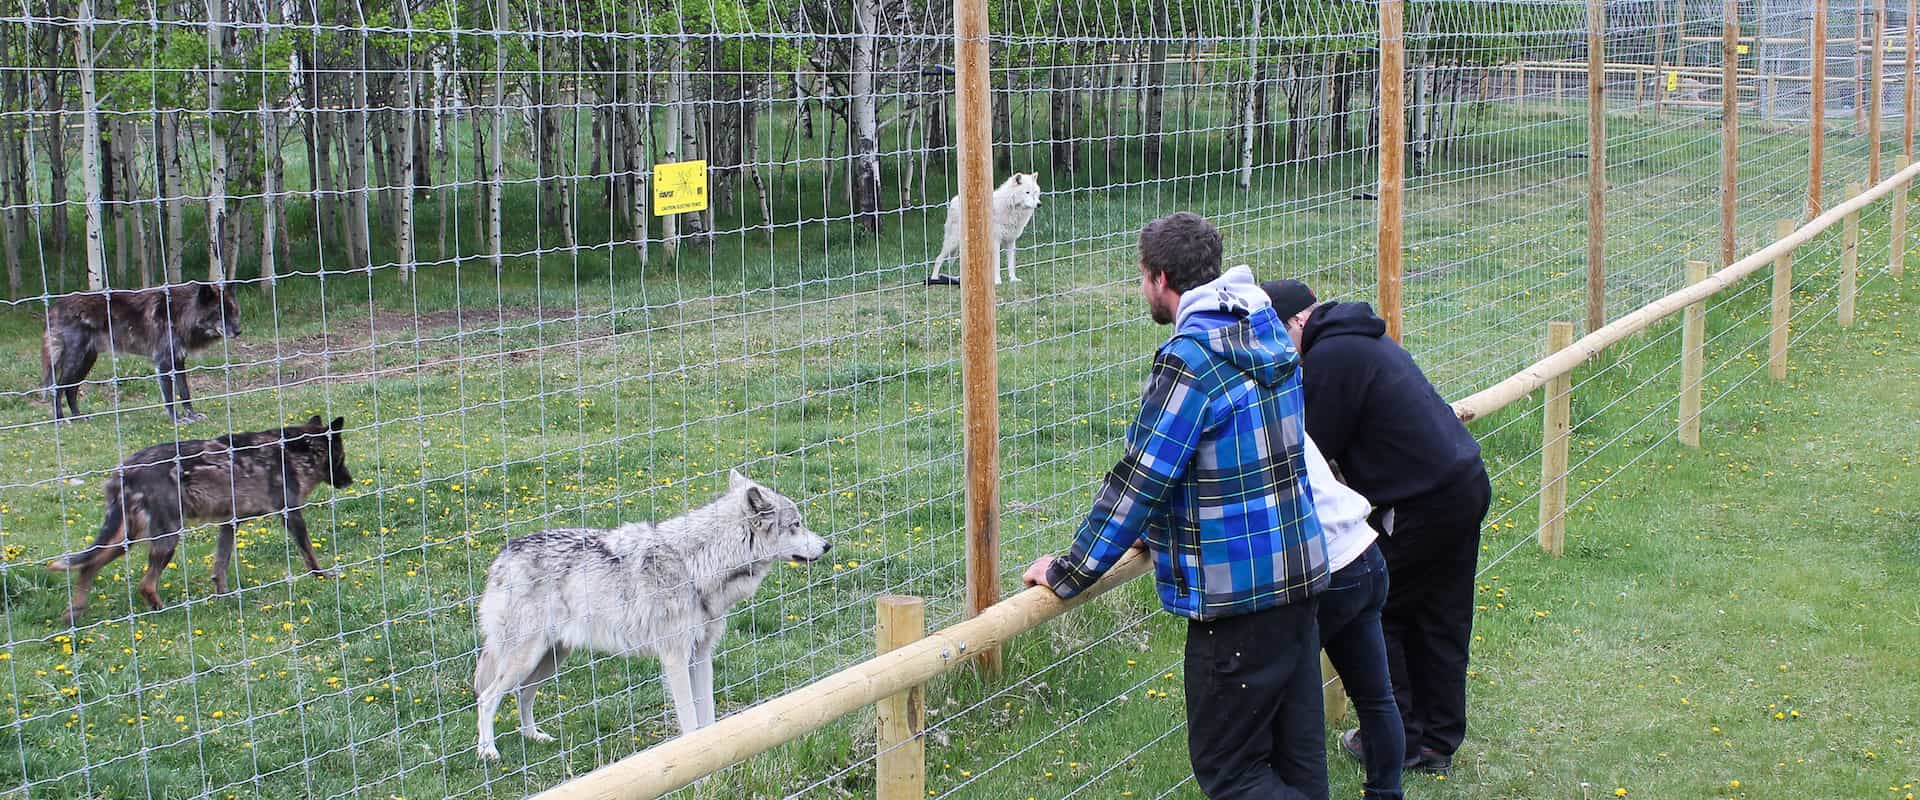 Wolfdog Sanctuary – Self Guided